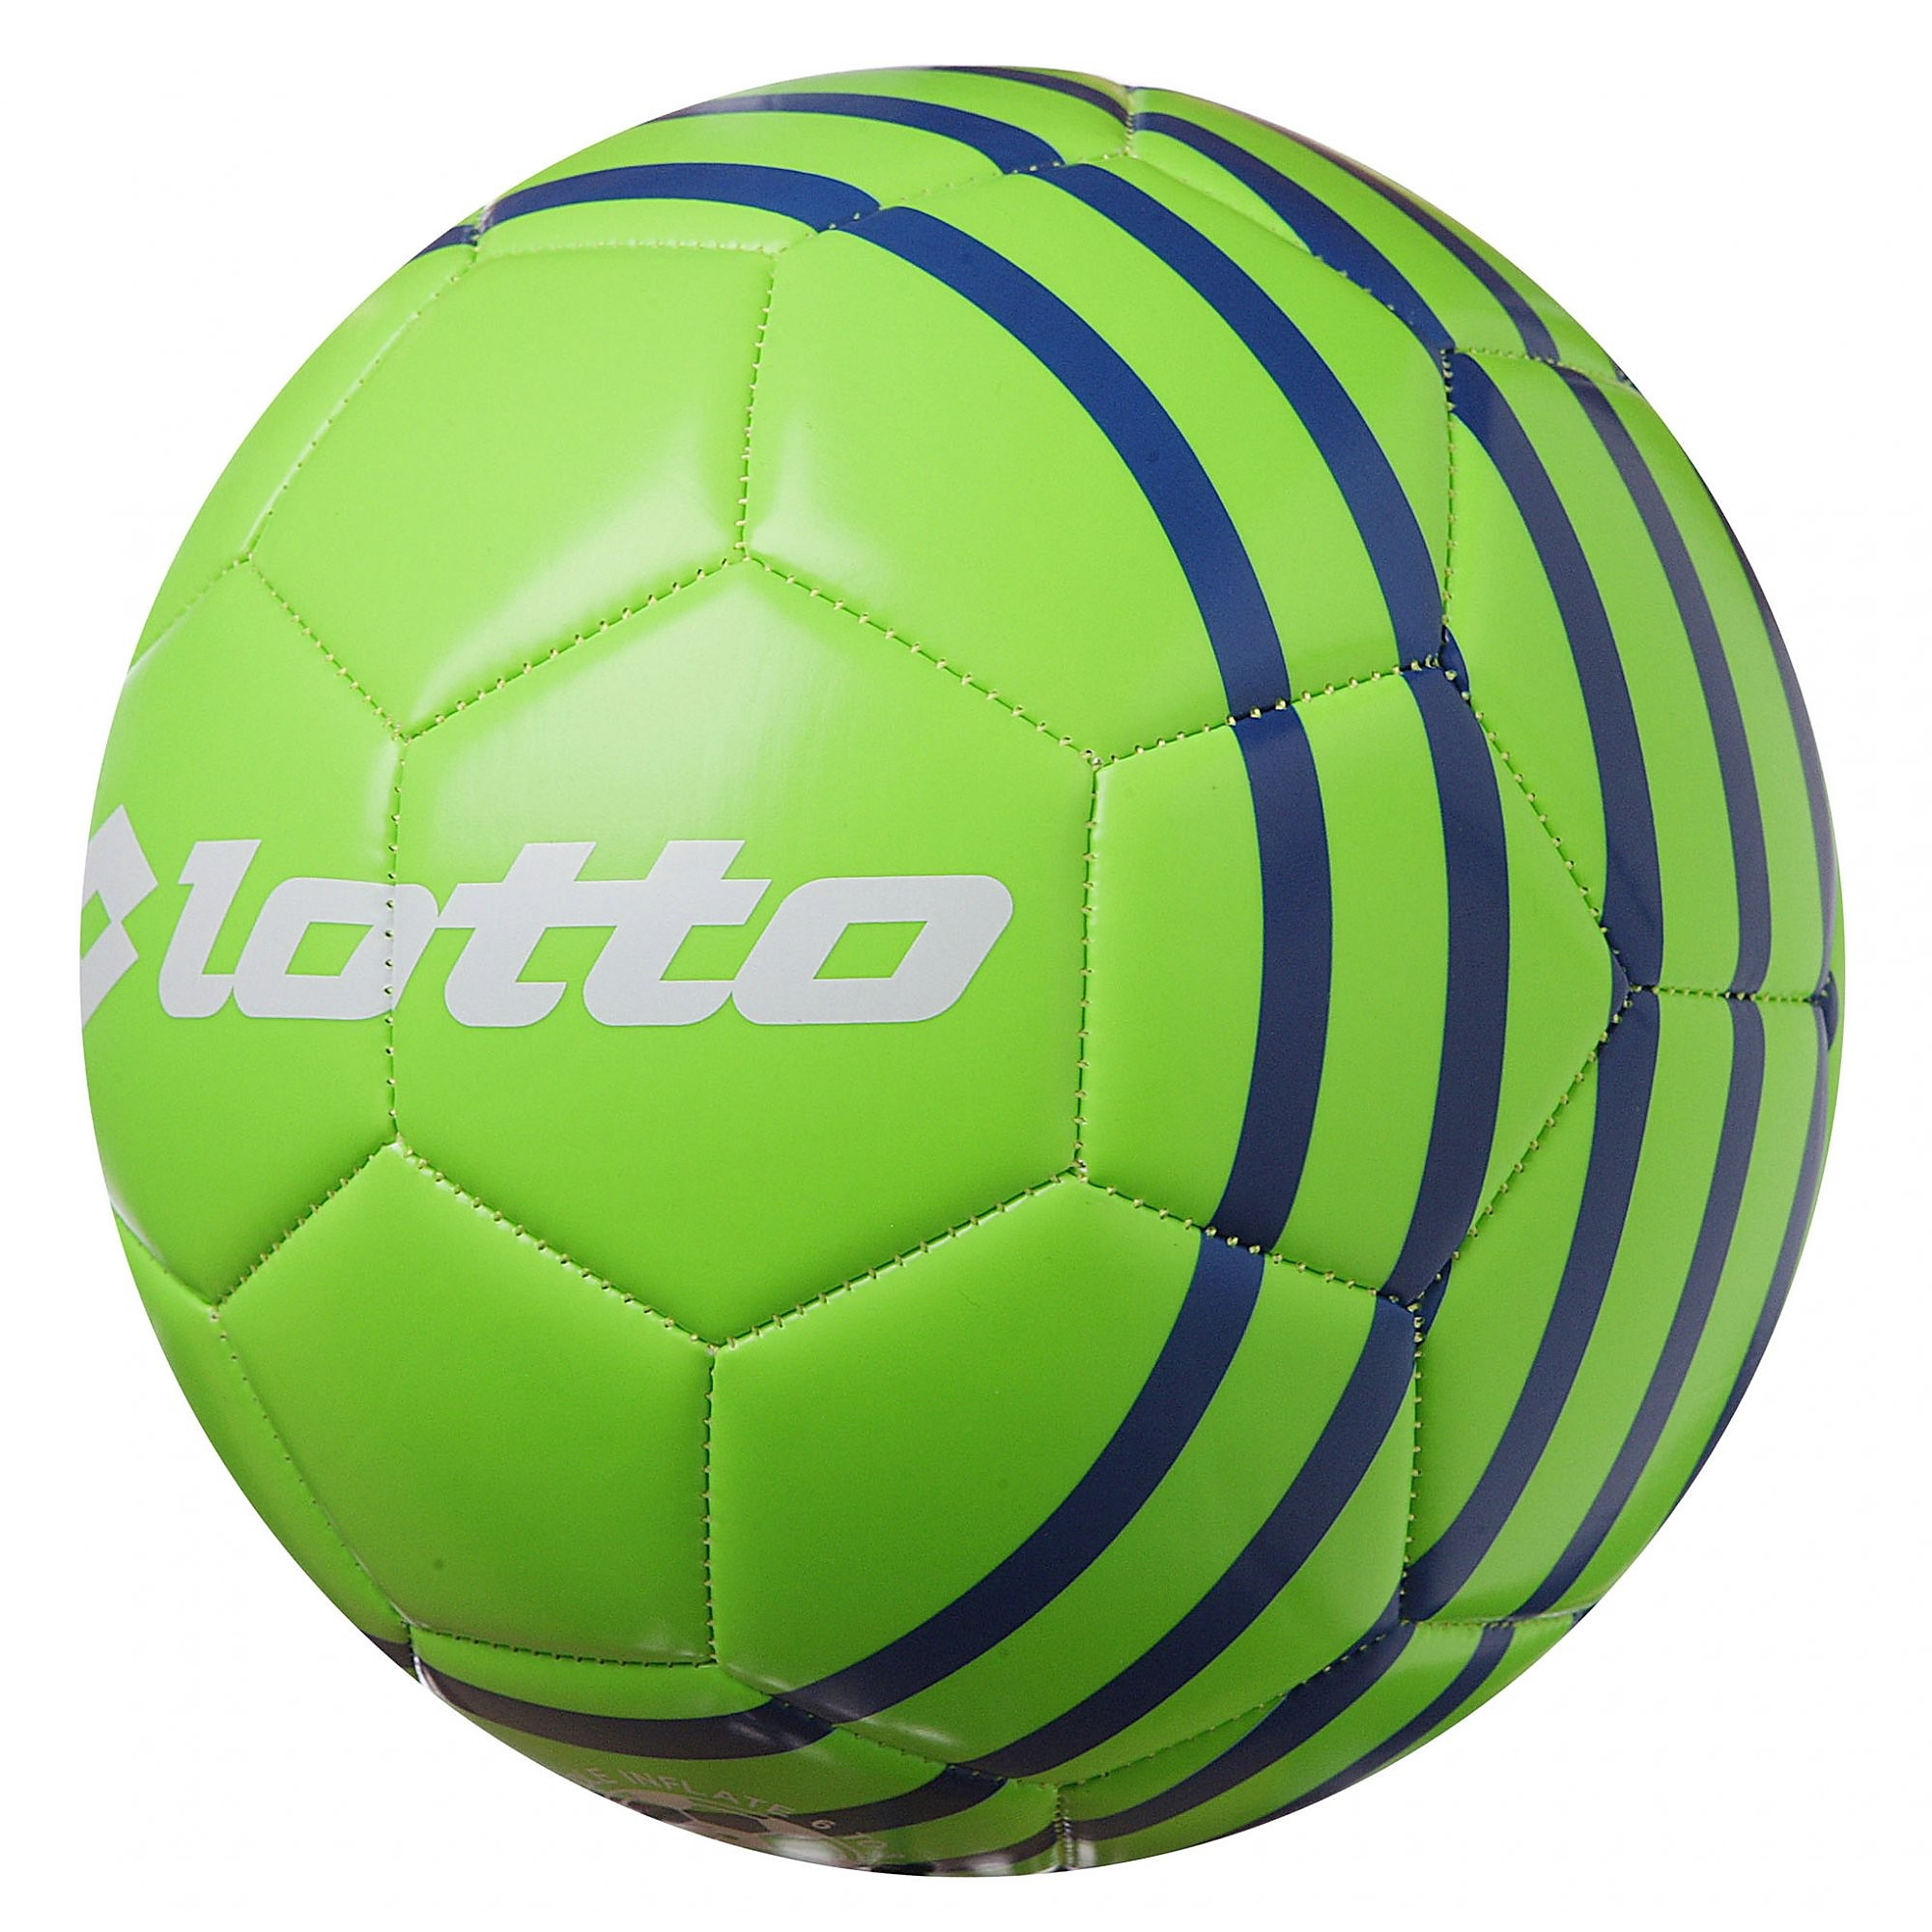 LOTTO ACFU UNI SOCC BALL